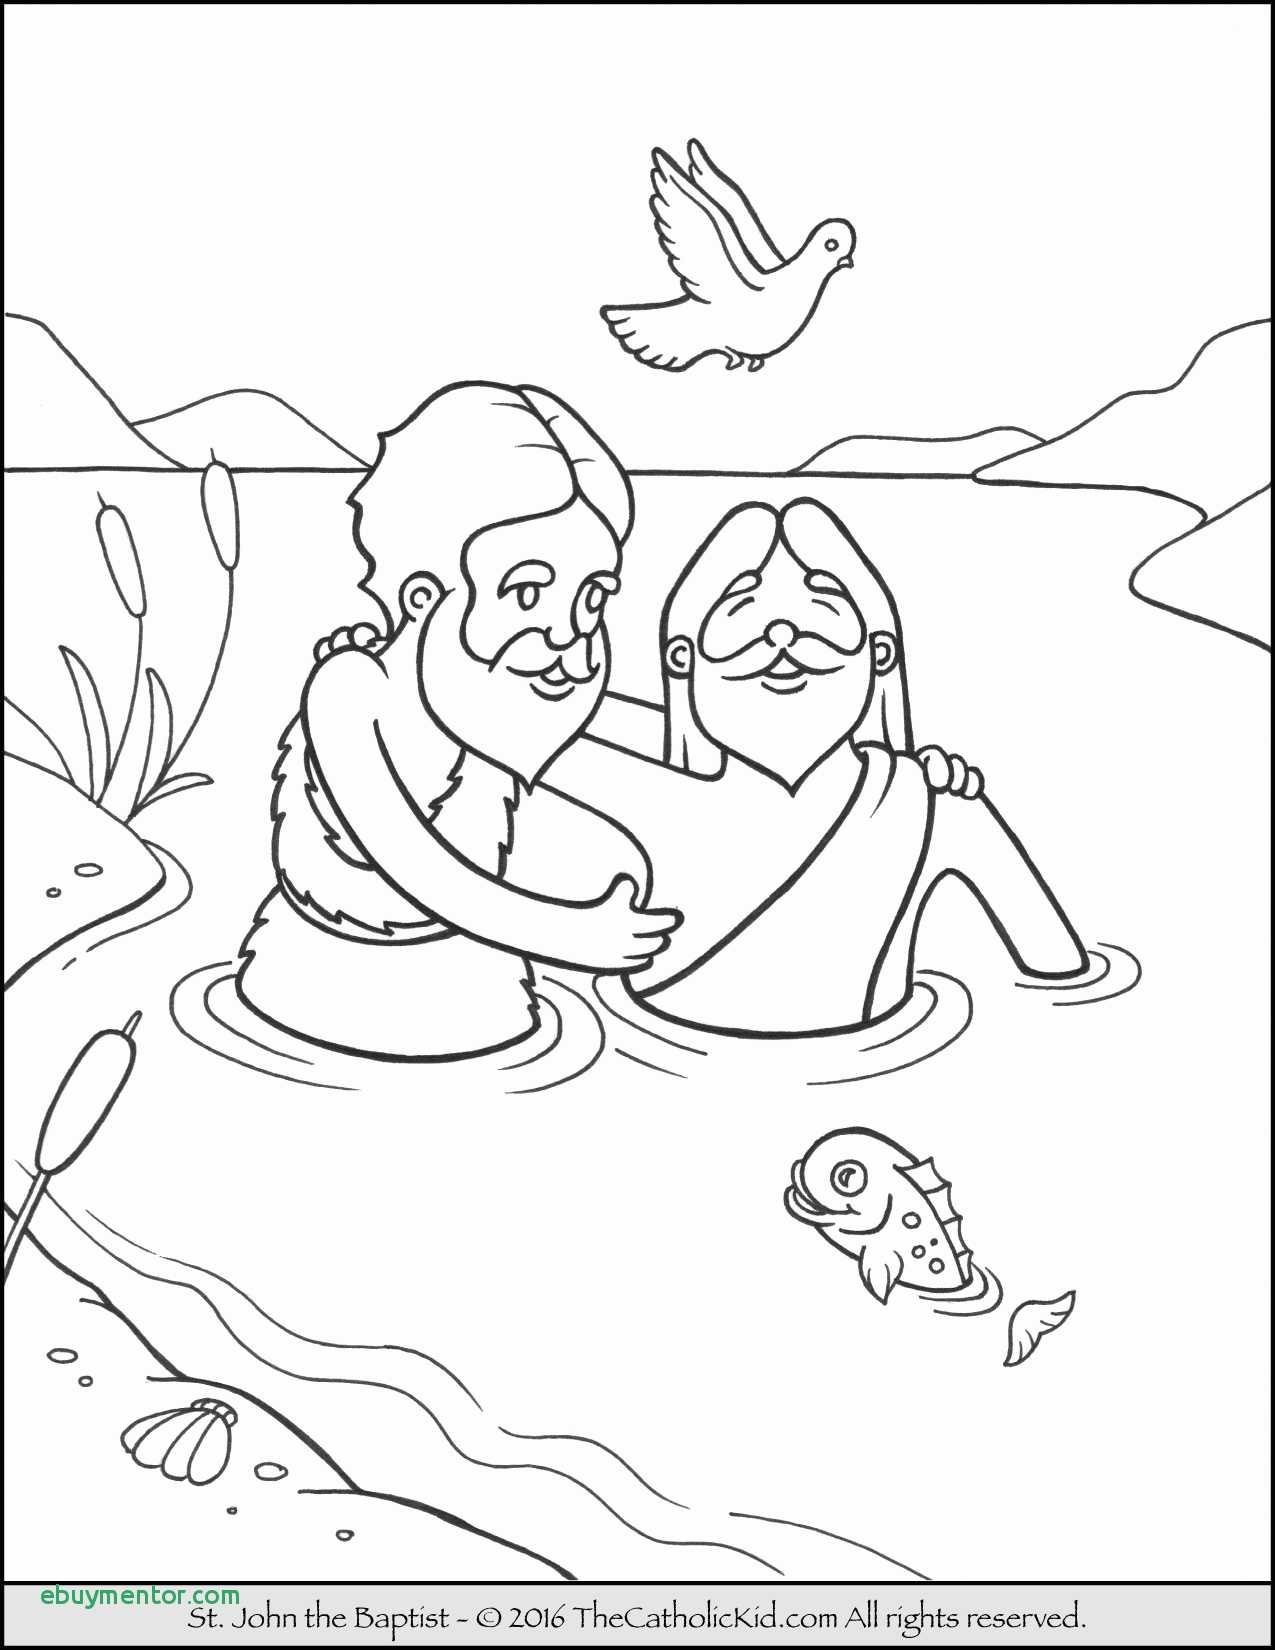 Jesus Loves Children Coloring Pages  Download 19g - Free For Children